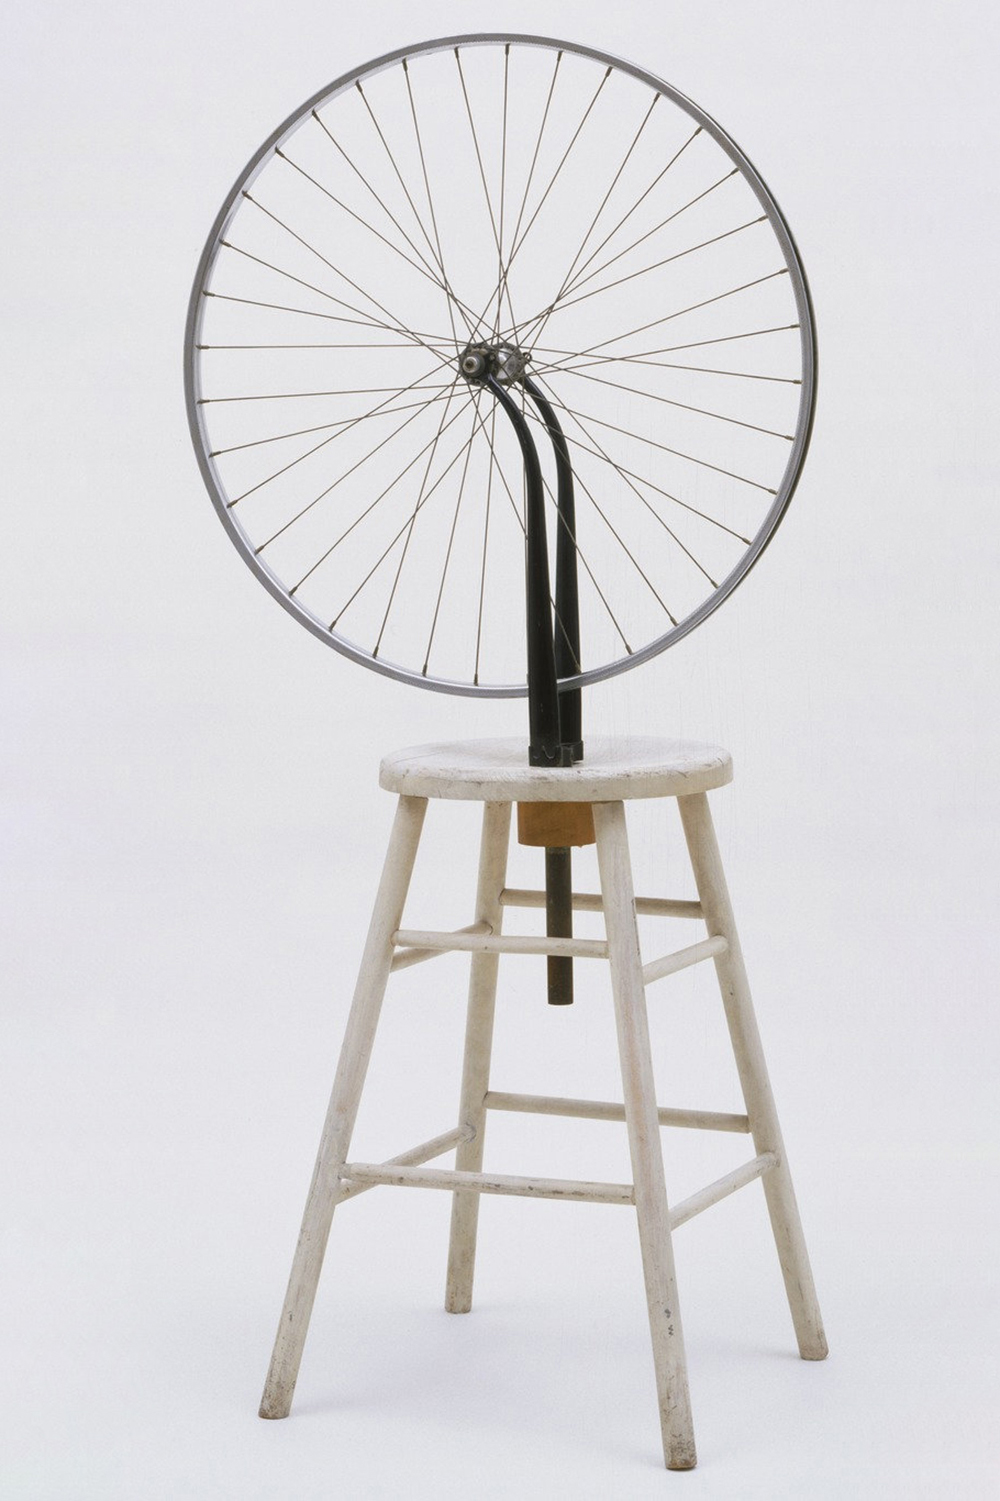 Bicycle Wheel, 1913